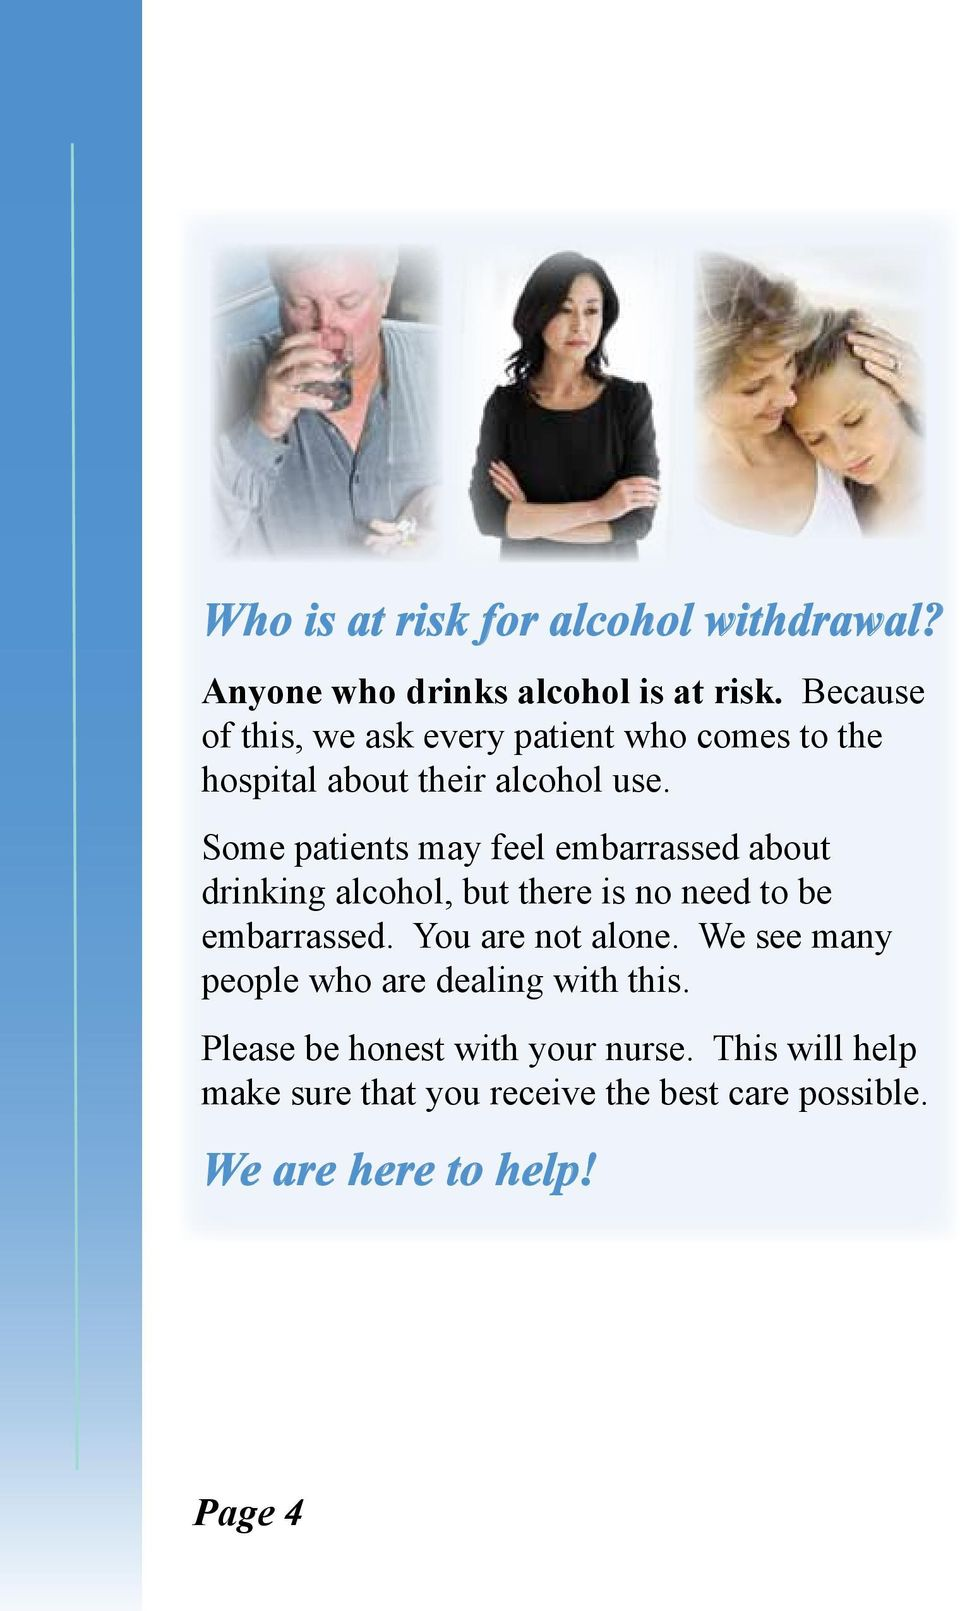 Some patients may feel embarrassed about drinking alcohol, but there is no need to be embarrassed.